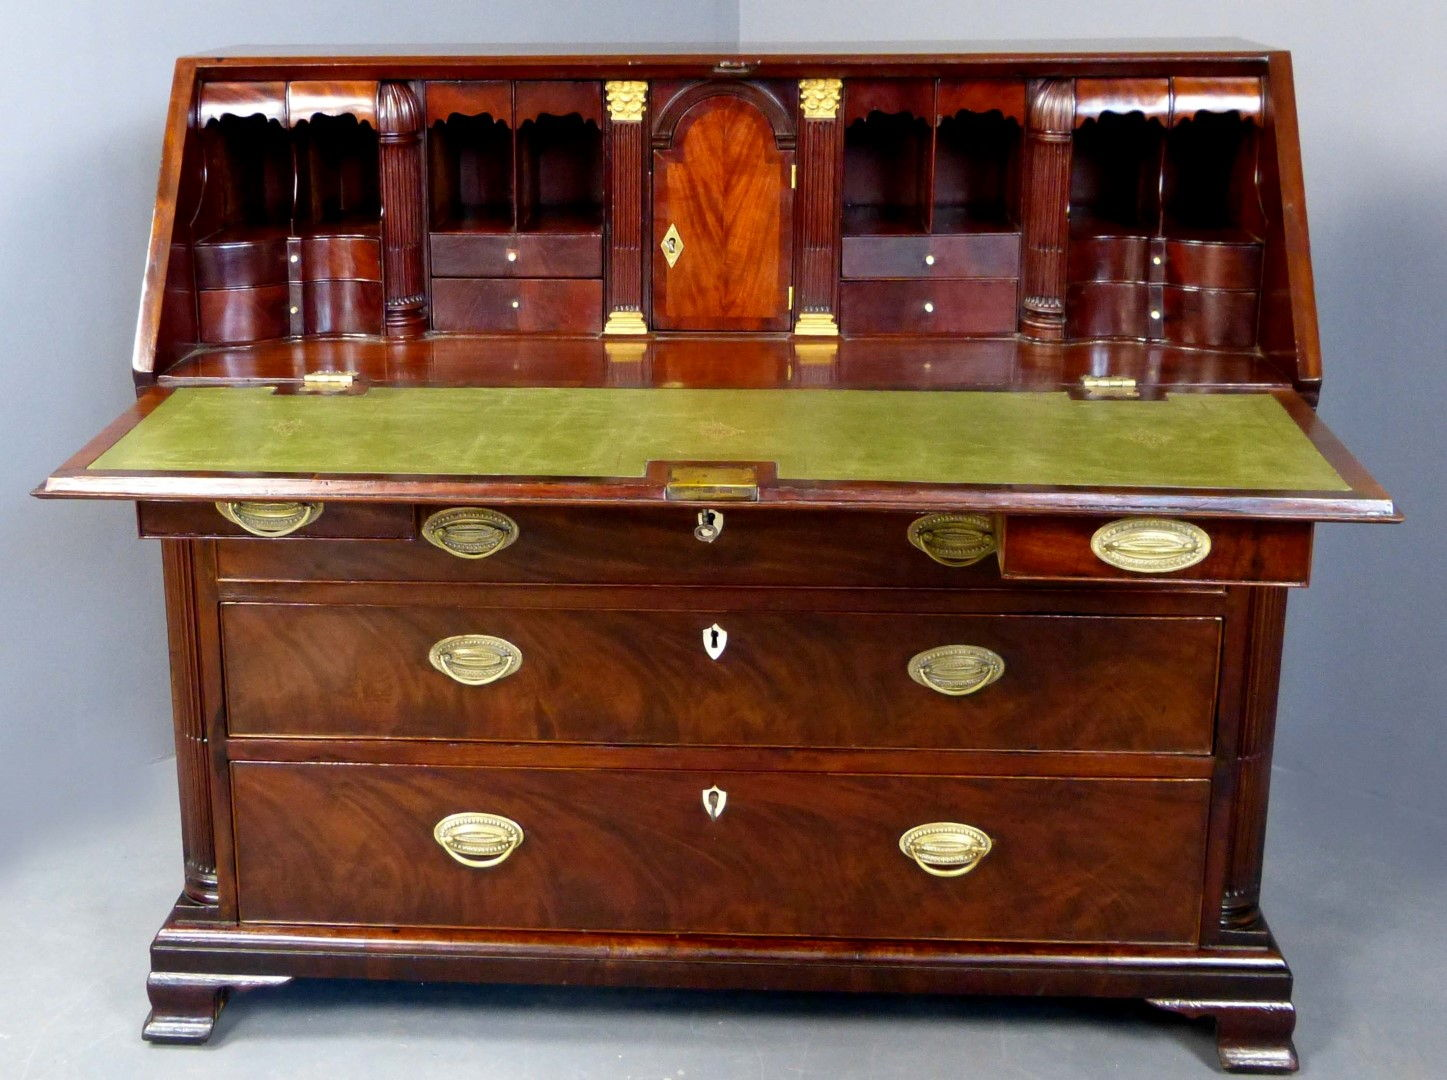 Antique furniture antique cupboards antique tables for Antique furniture